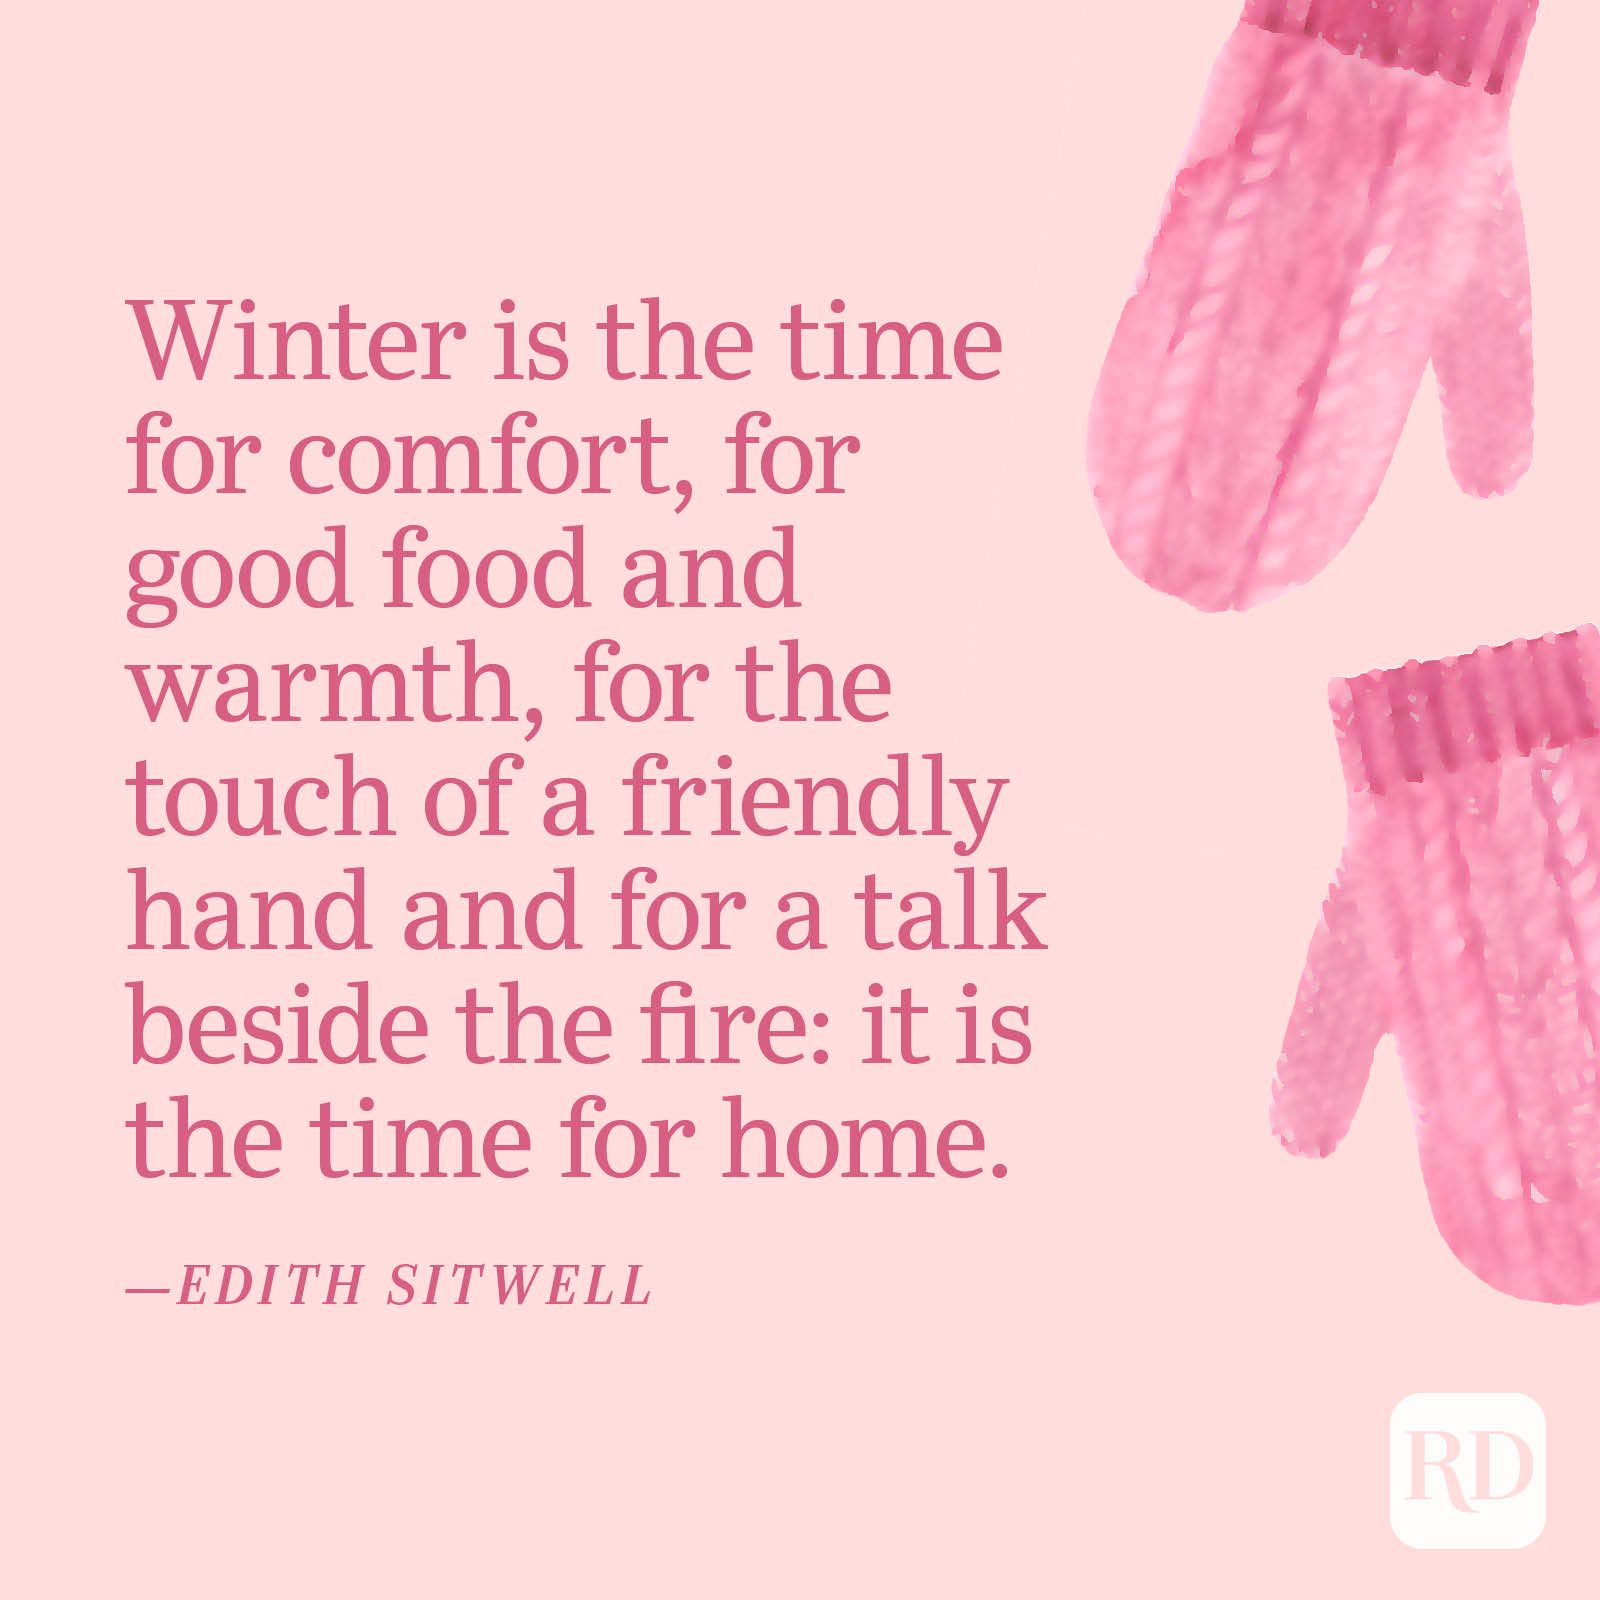 """""""Winter is the time for comfort, for good food and warmth, for the touch of a friendly hand and for a talk beside the fire: it is the time for home.""""—Edith Sitwell"""